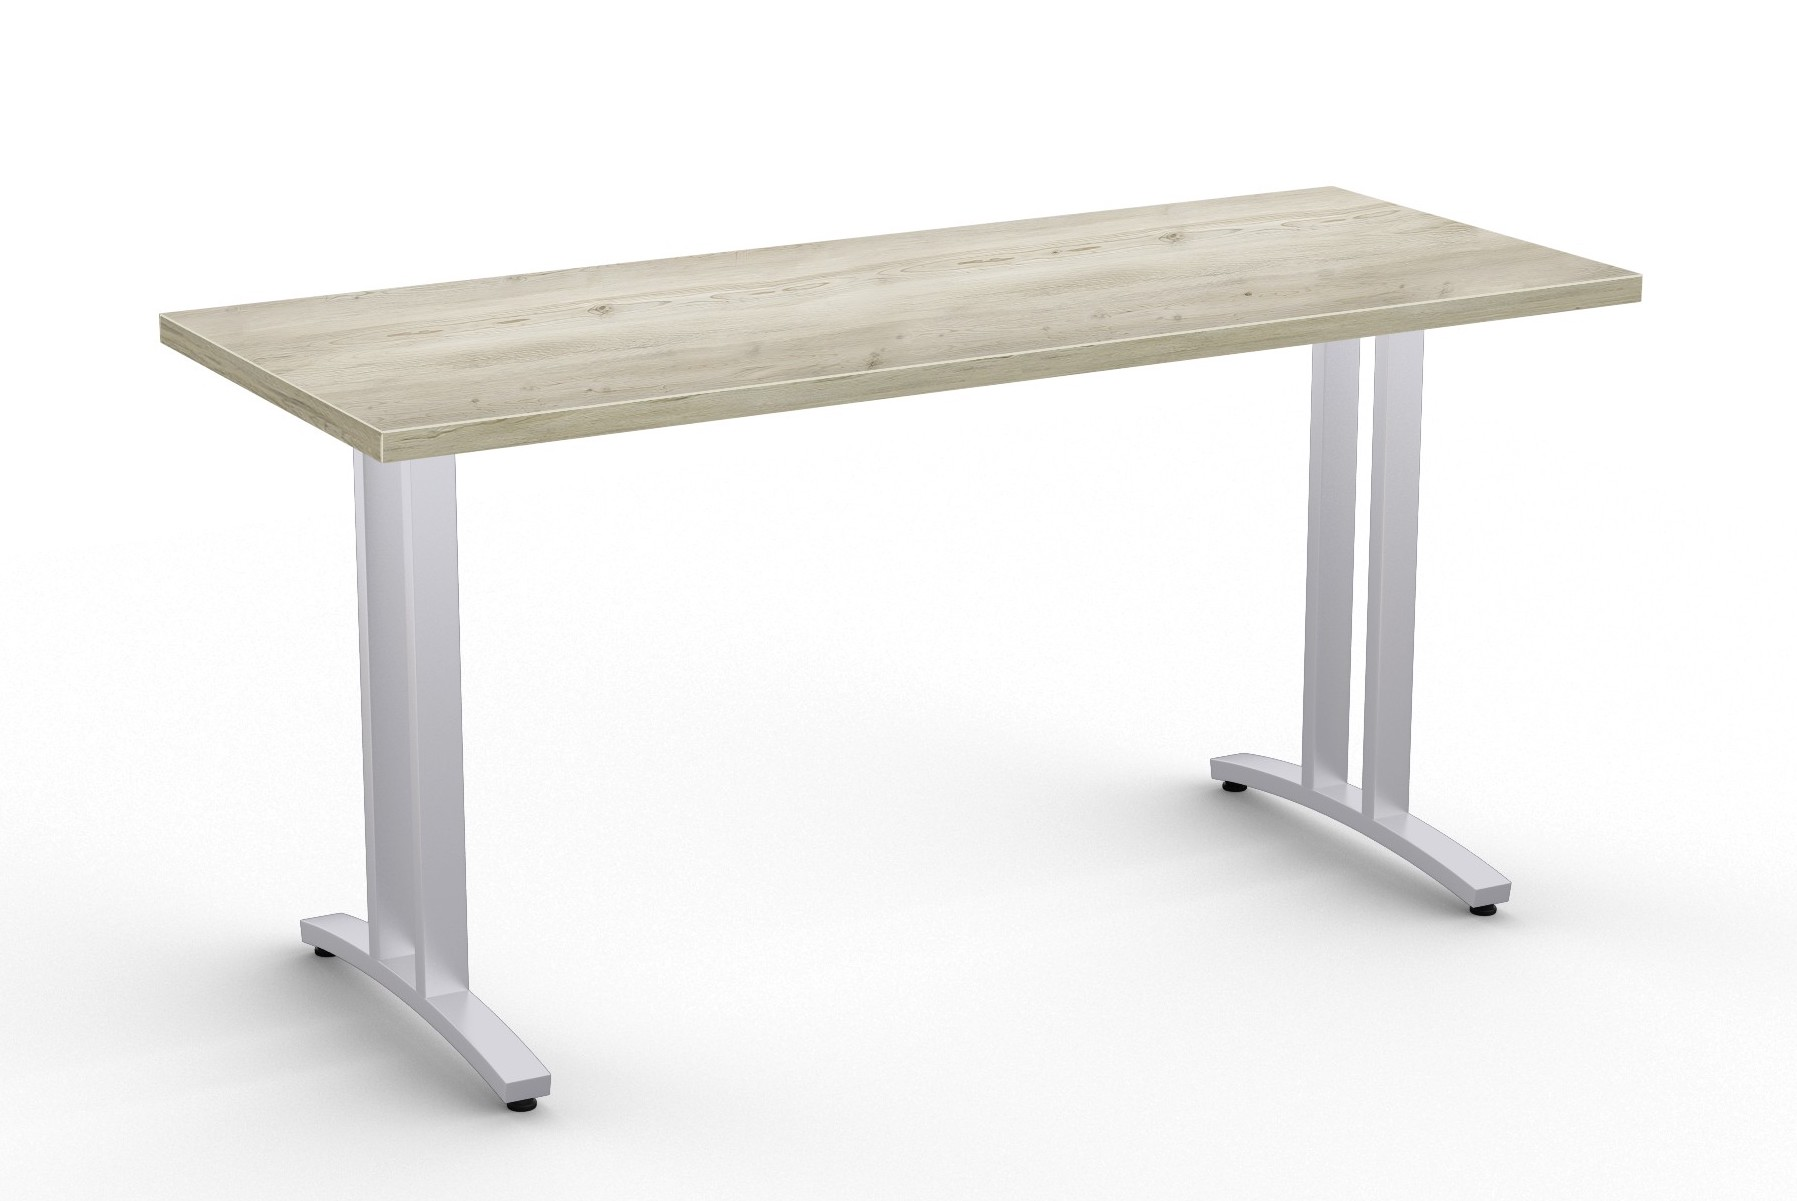 special-t structure 2tl work table in aged driftwood